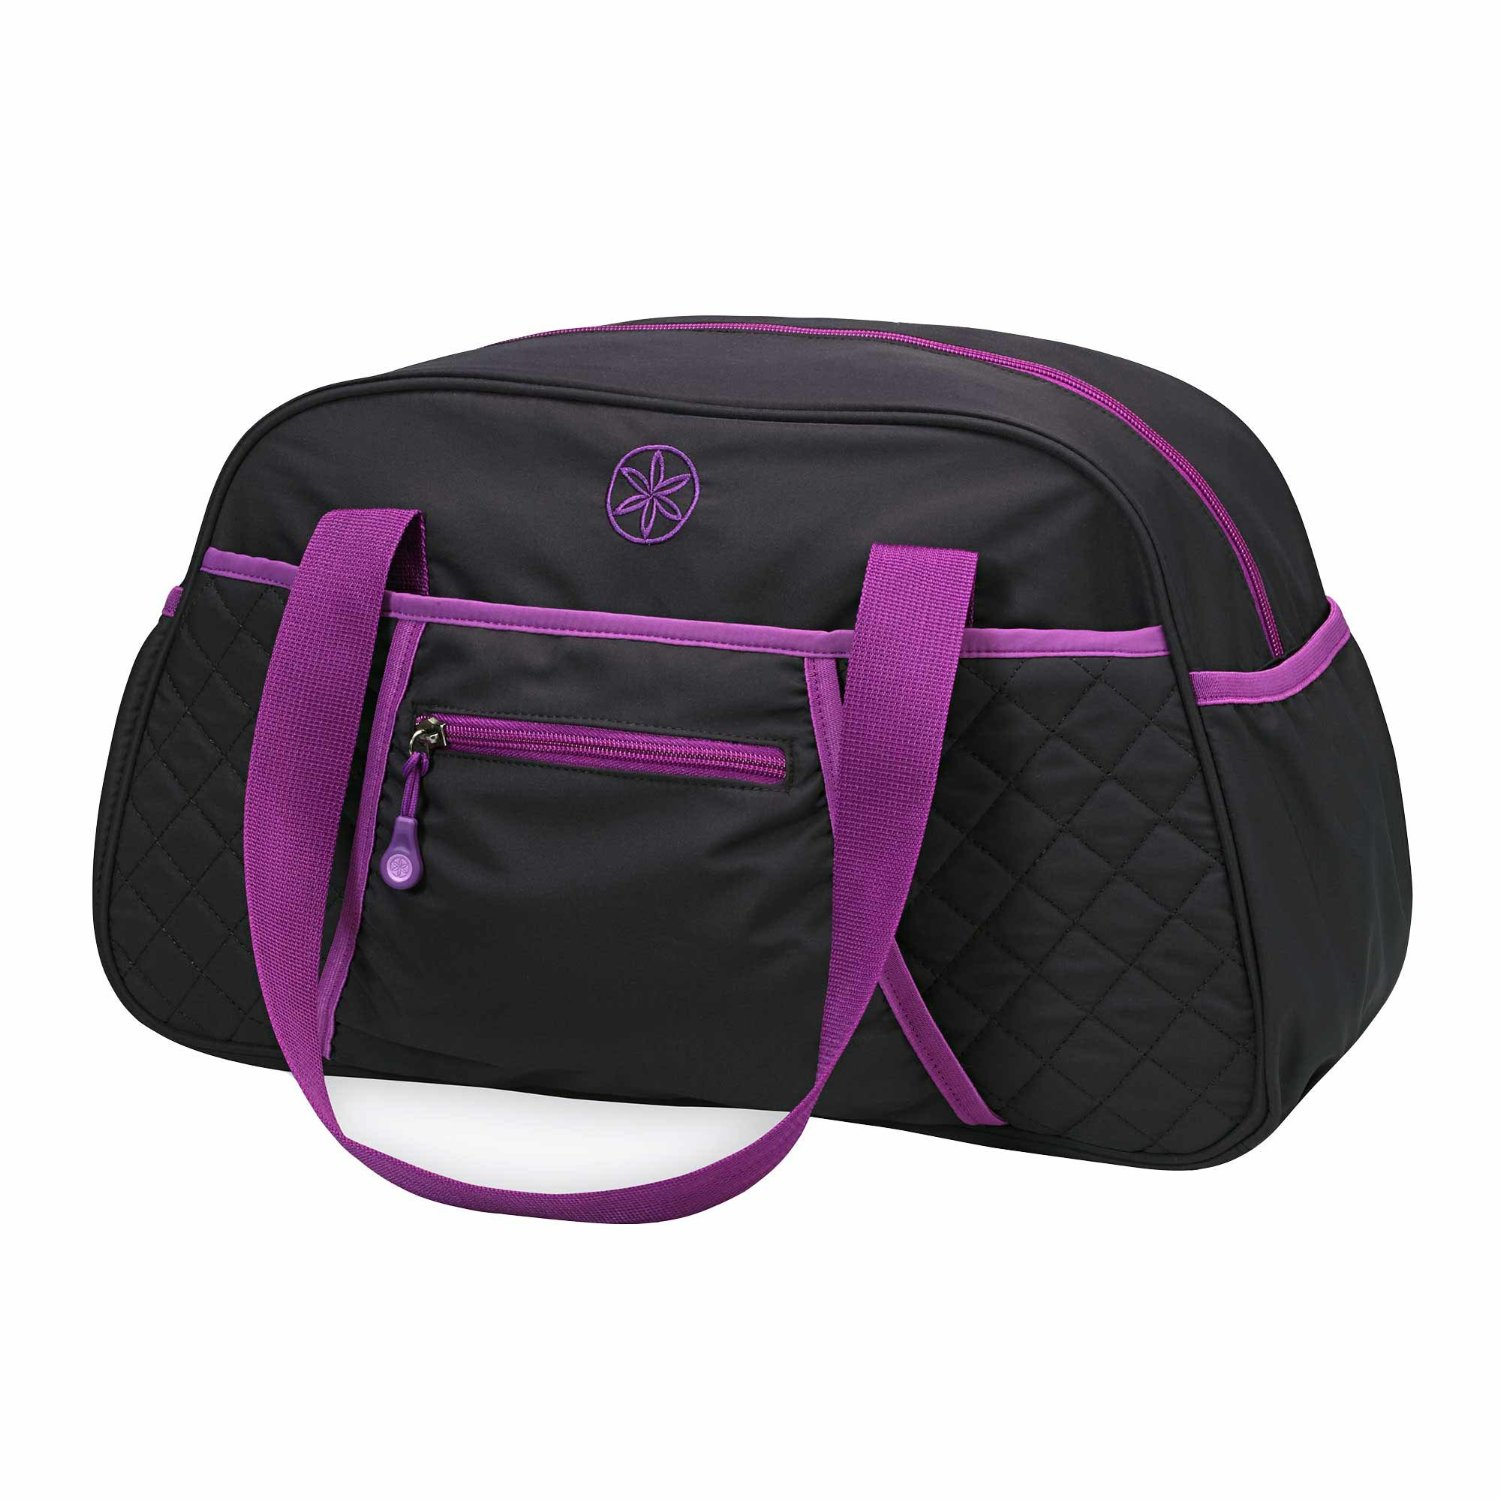 Gaiam Yoga-Matte Seesack